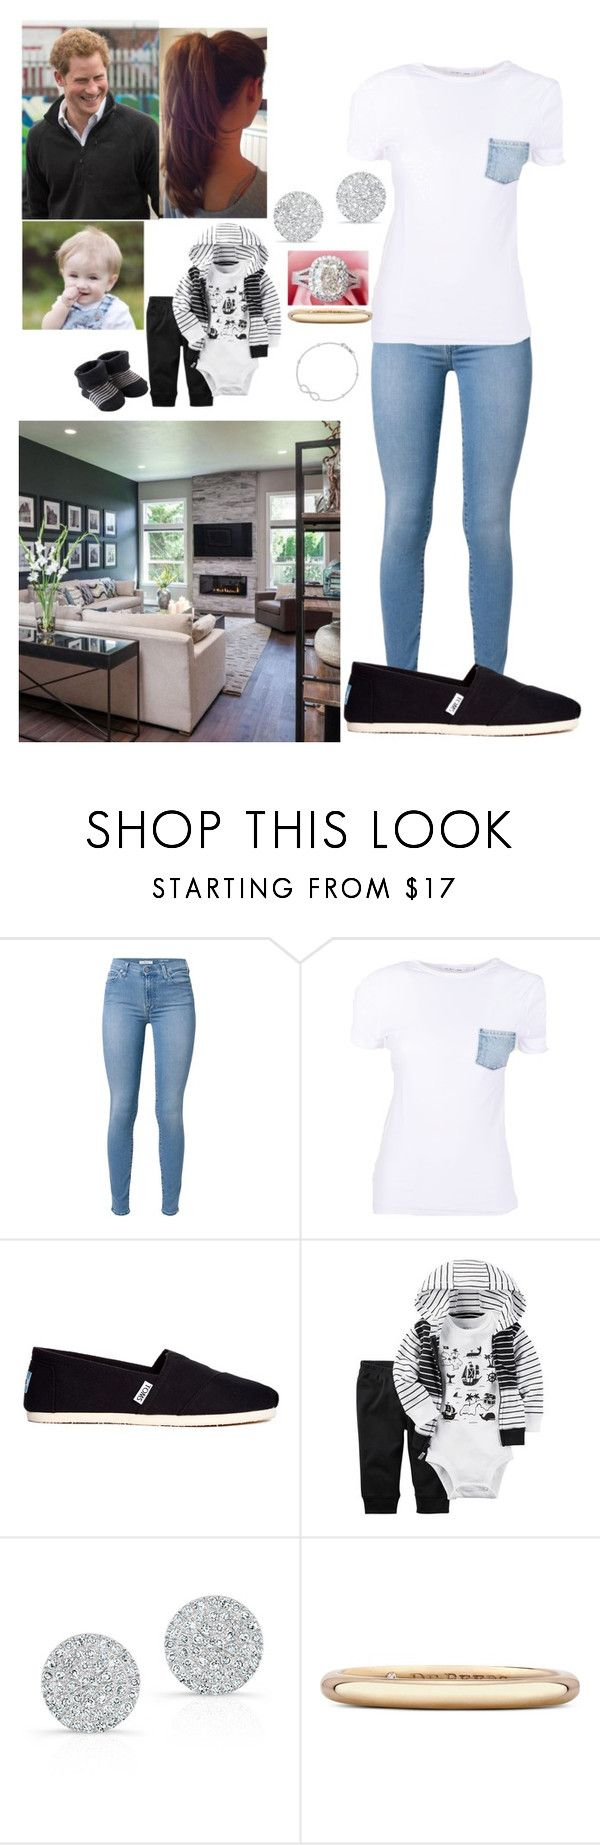 """Family spending day home"" by royal-431 ❤ liked on Polyvore featuring 7 For All Mankind, Helmut Lang, TOMS, Carter's, Anne Sisteron, De Beers and Roberto Coin"